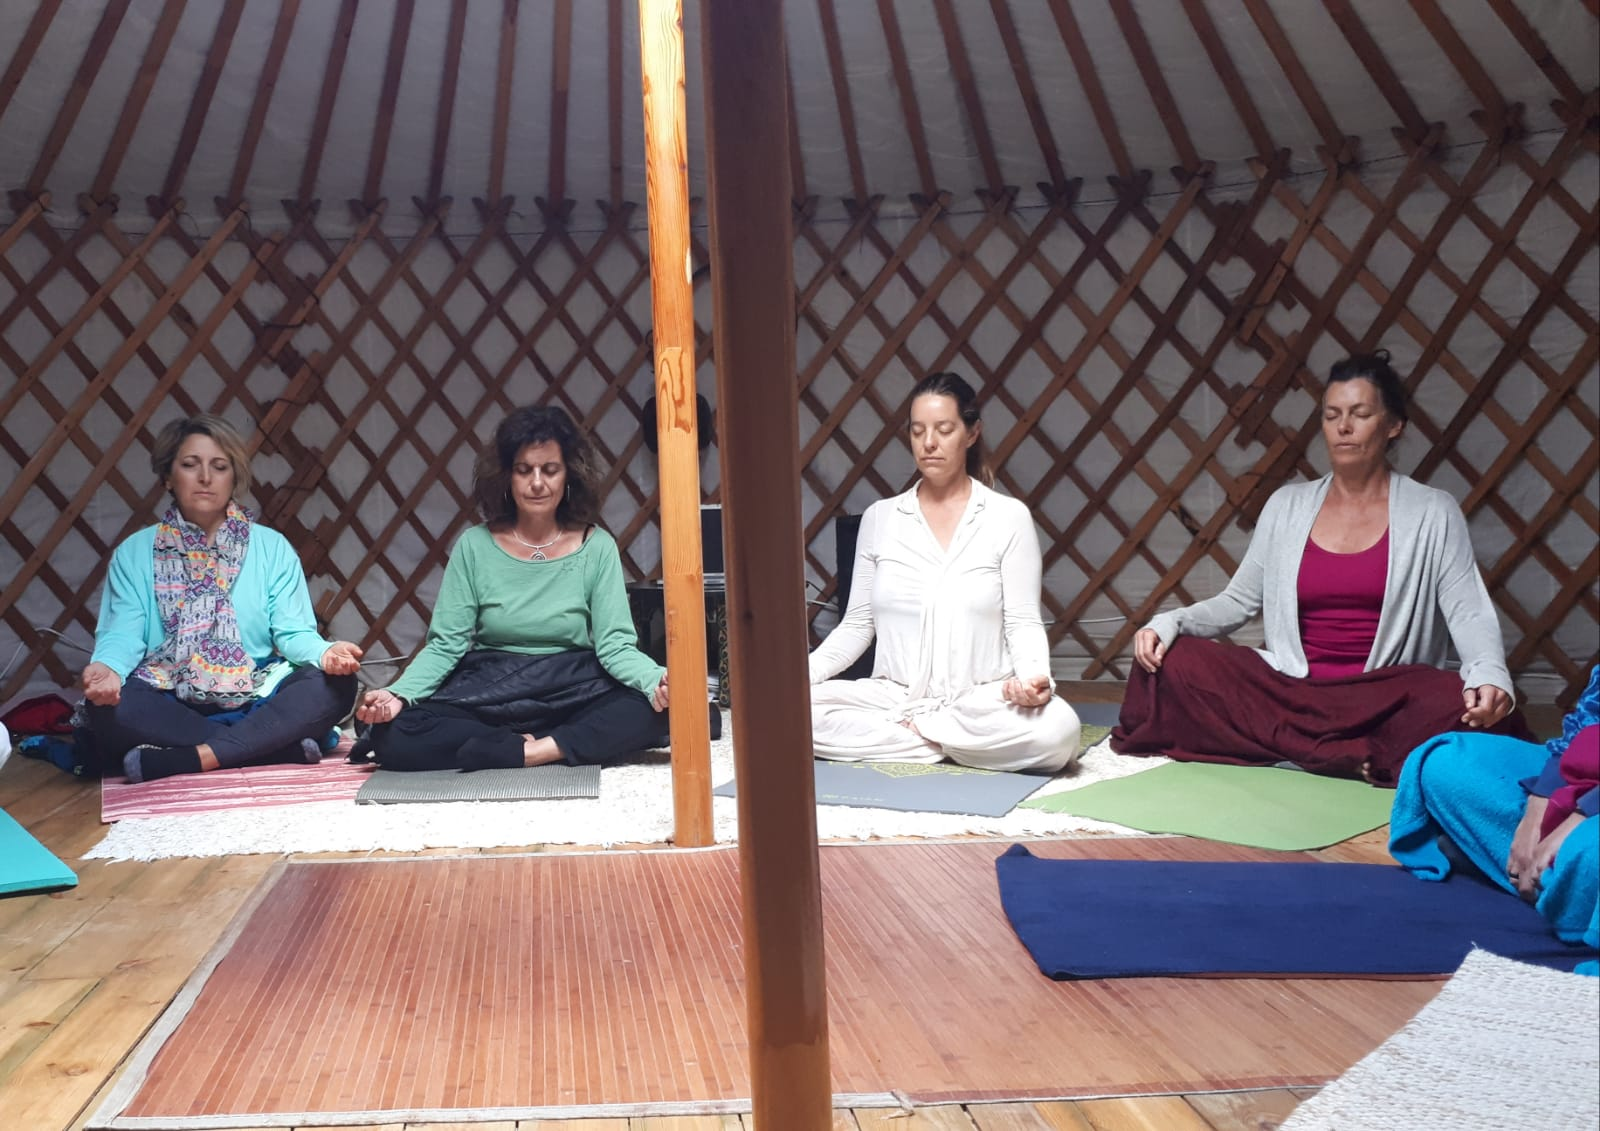 Retreat meditation spain